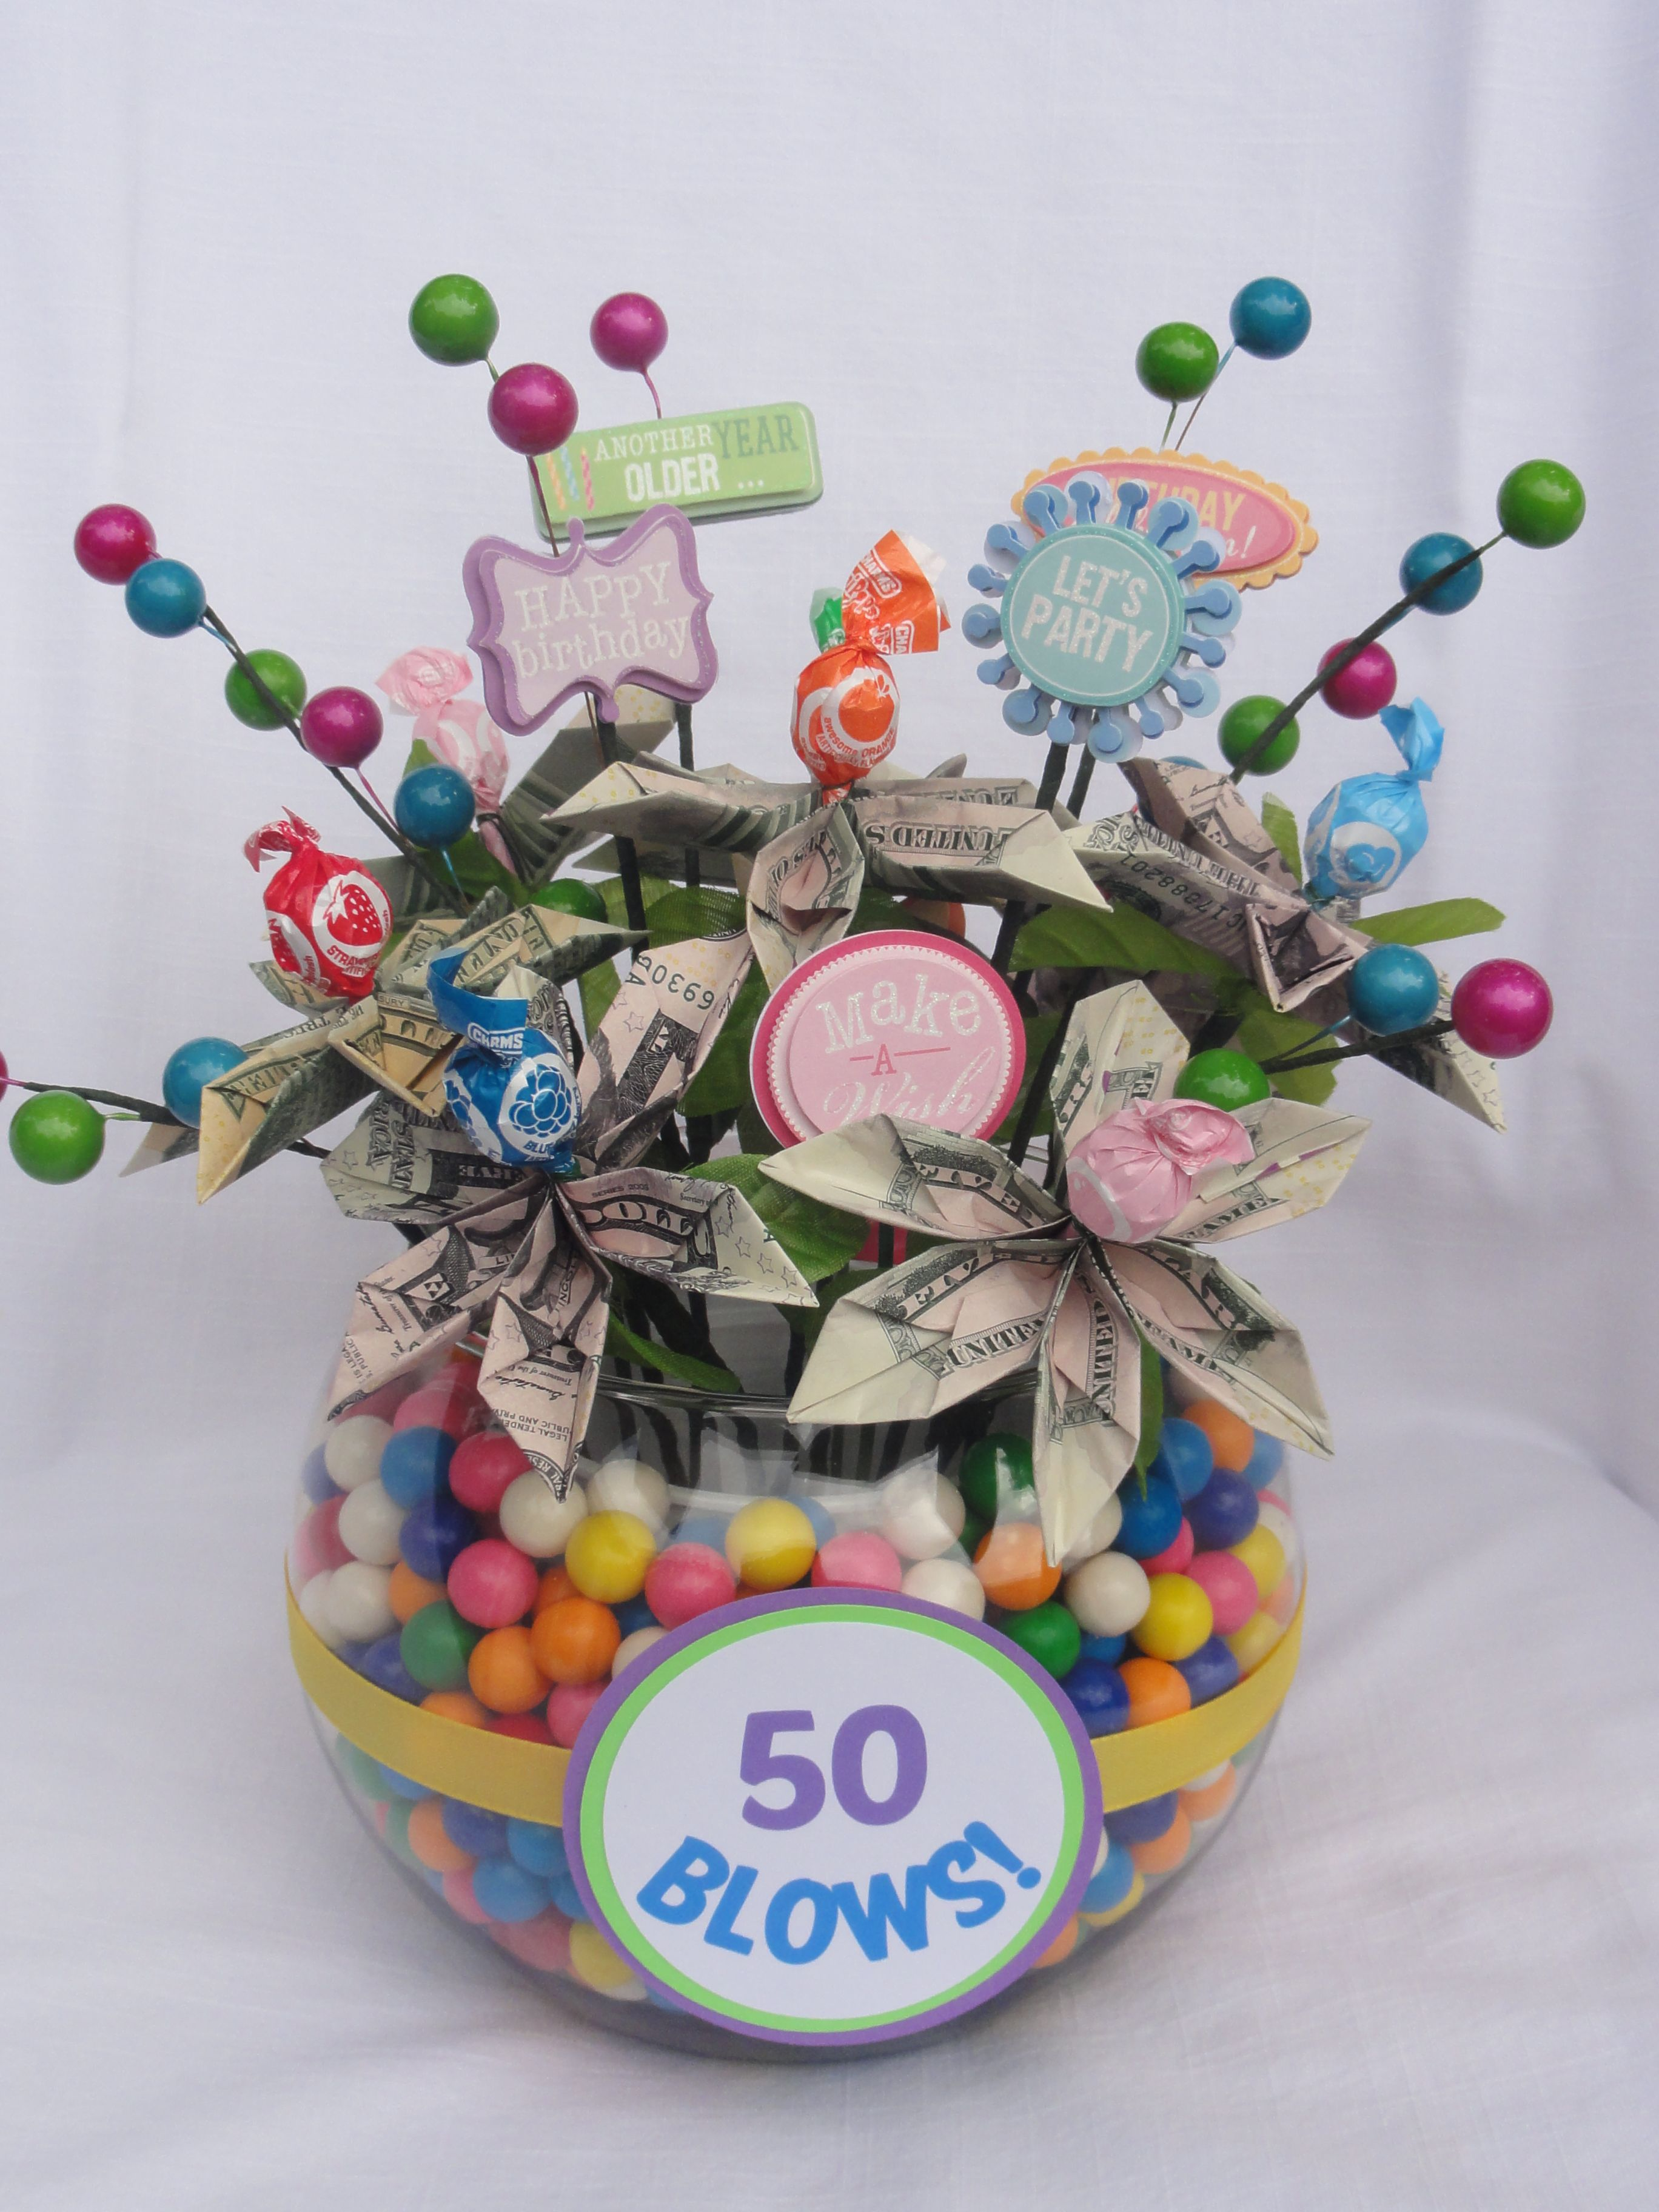 Money bouquet for my sisterinlaw's 50th birthday